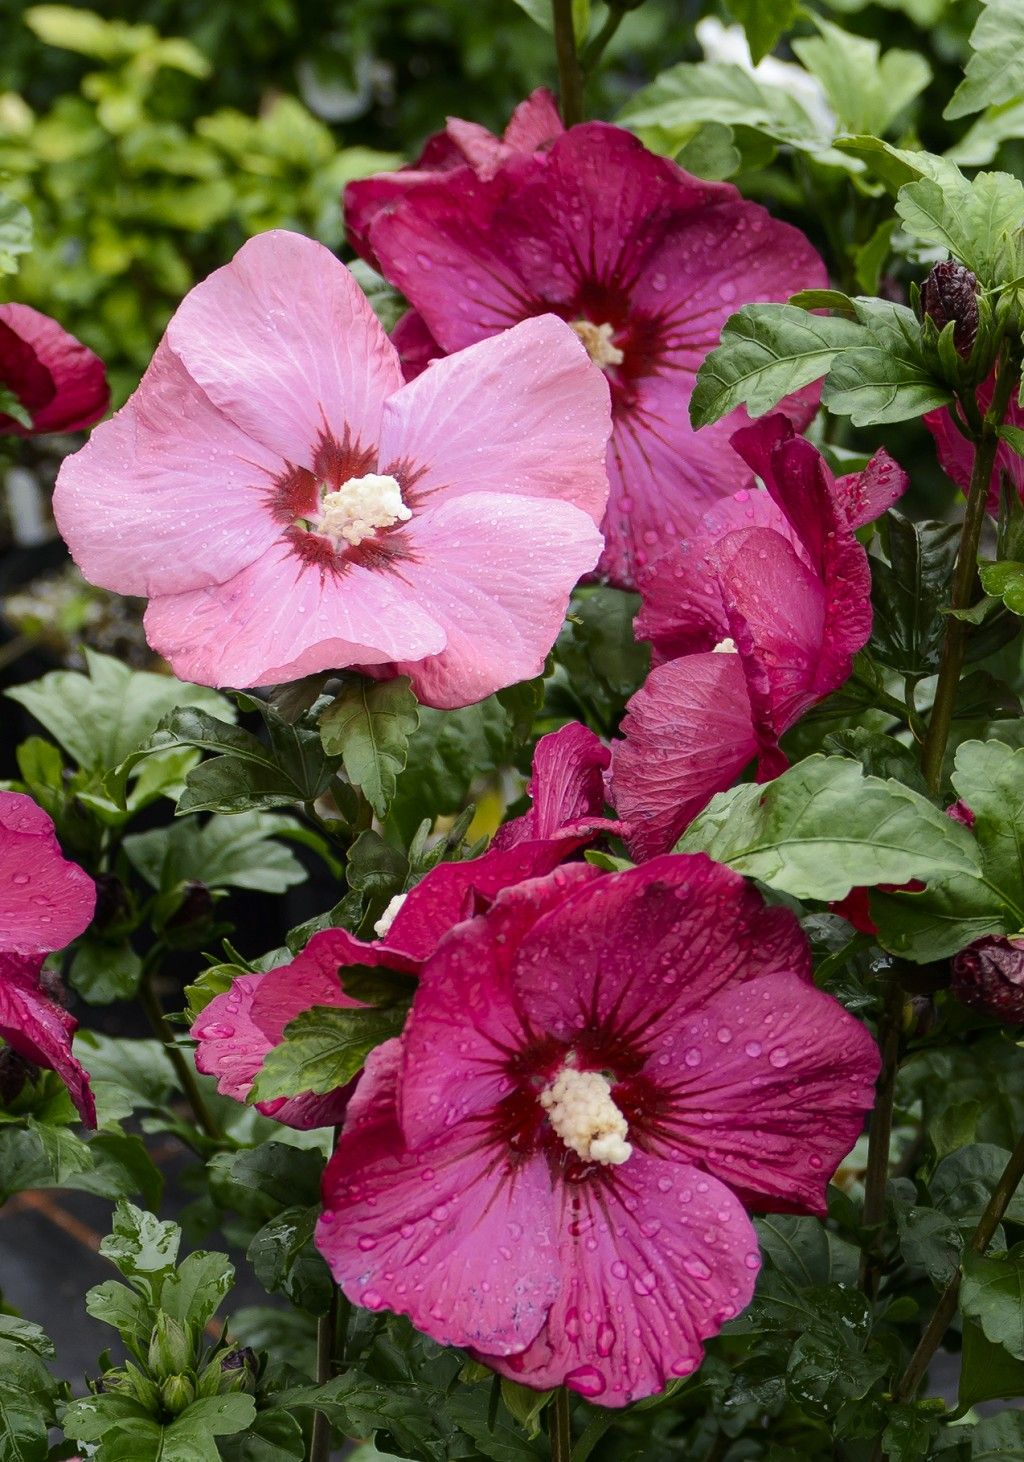 The awkward, twiggy rose of Sharon gets a makeover that makes it worth revisiting.